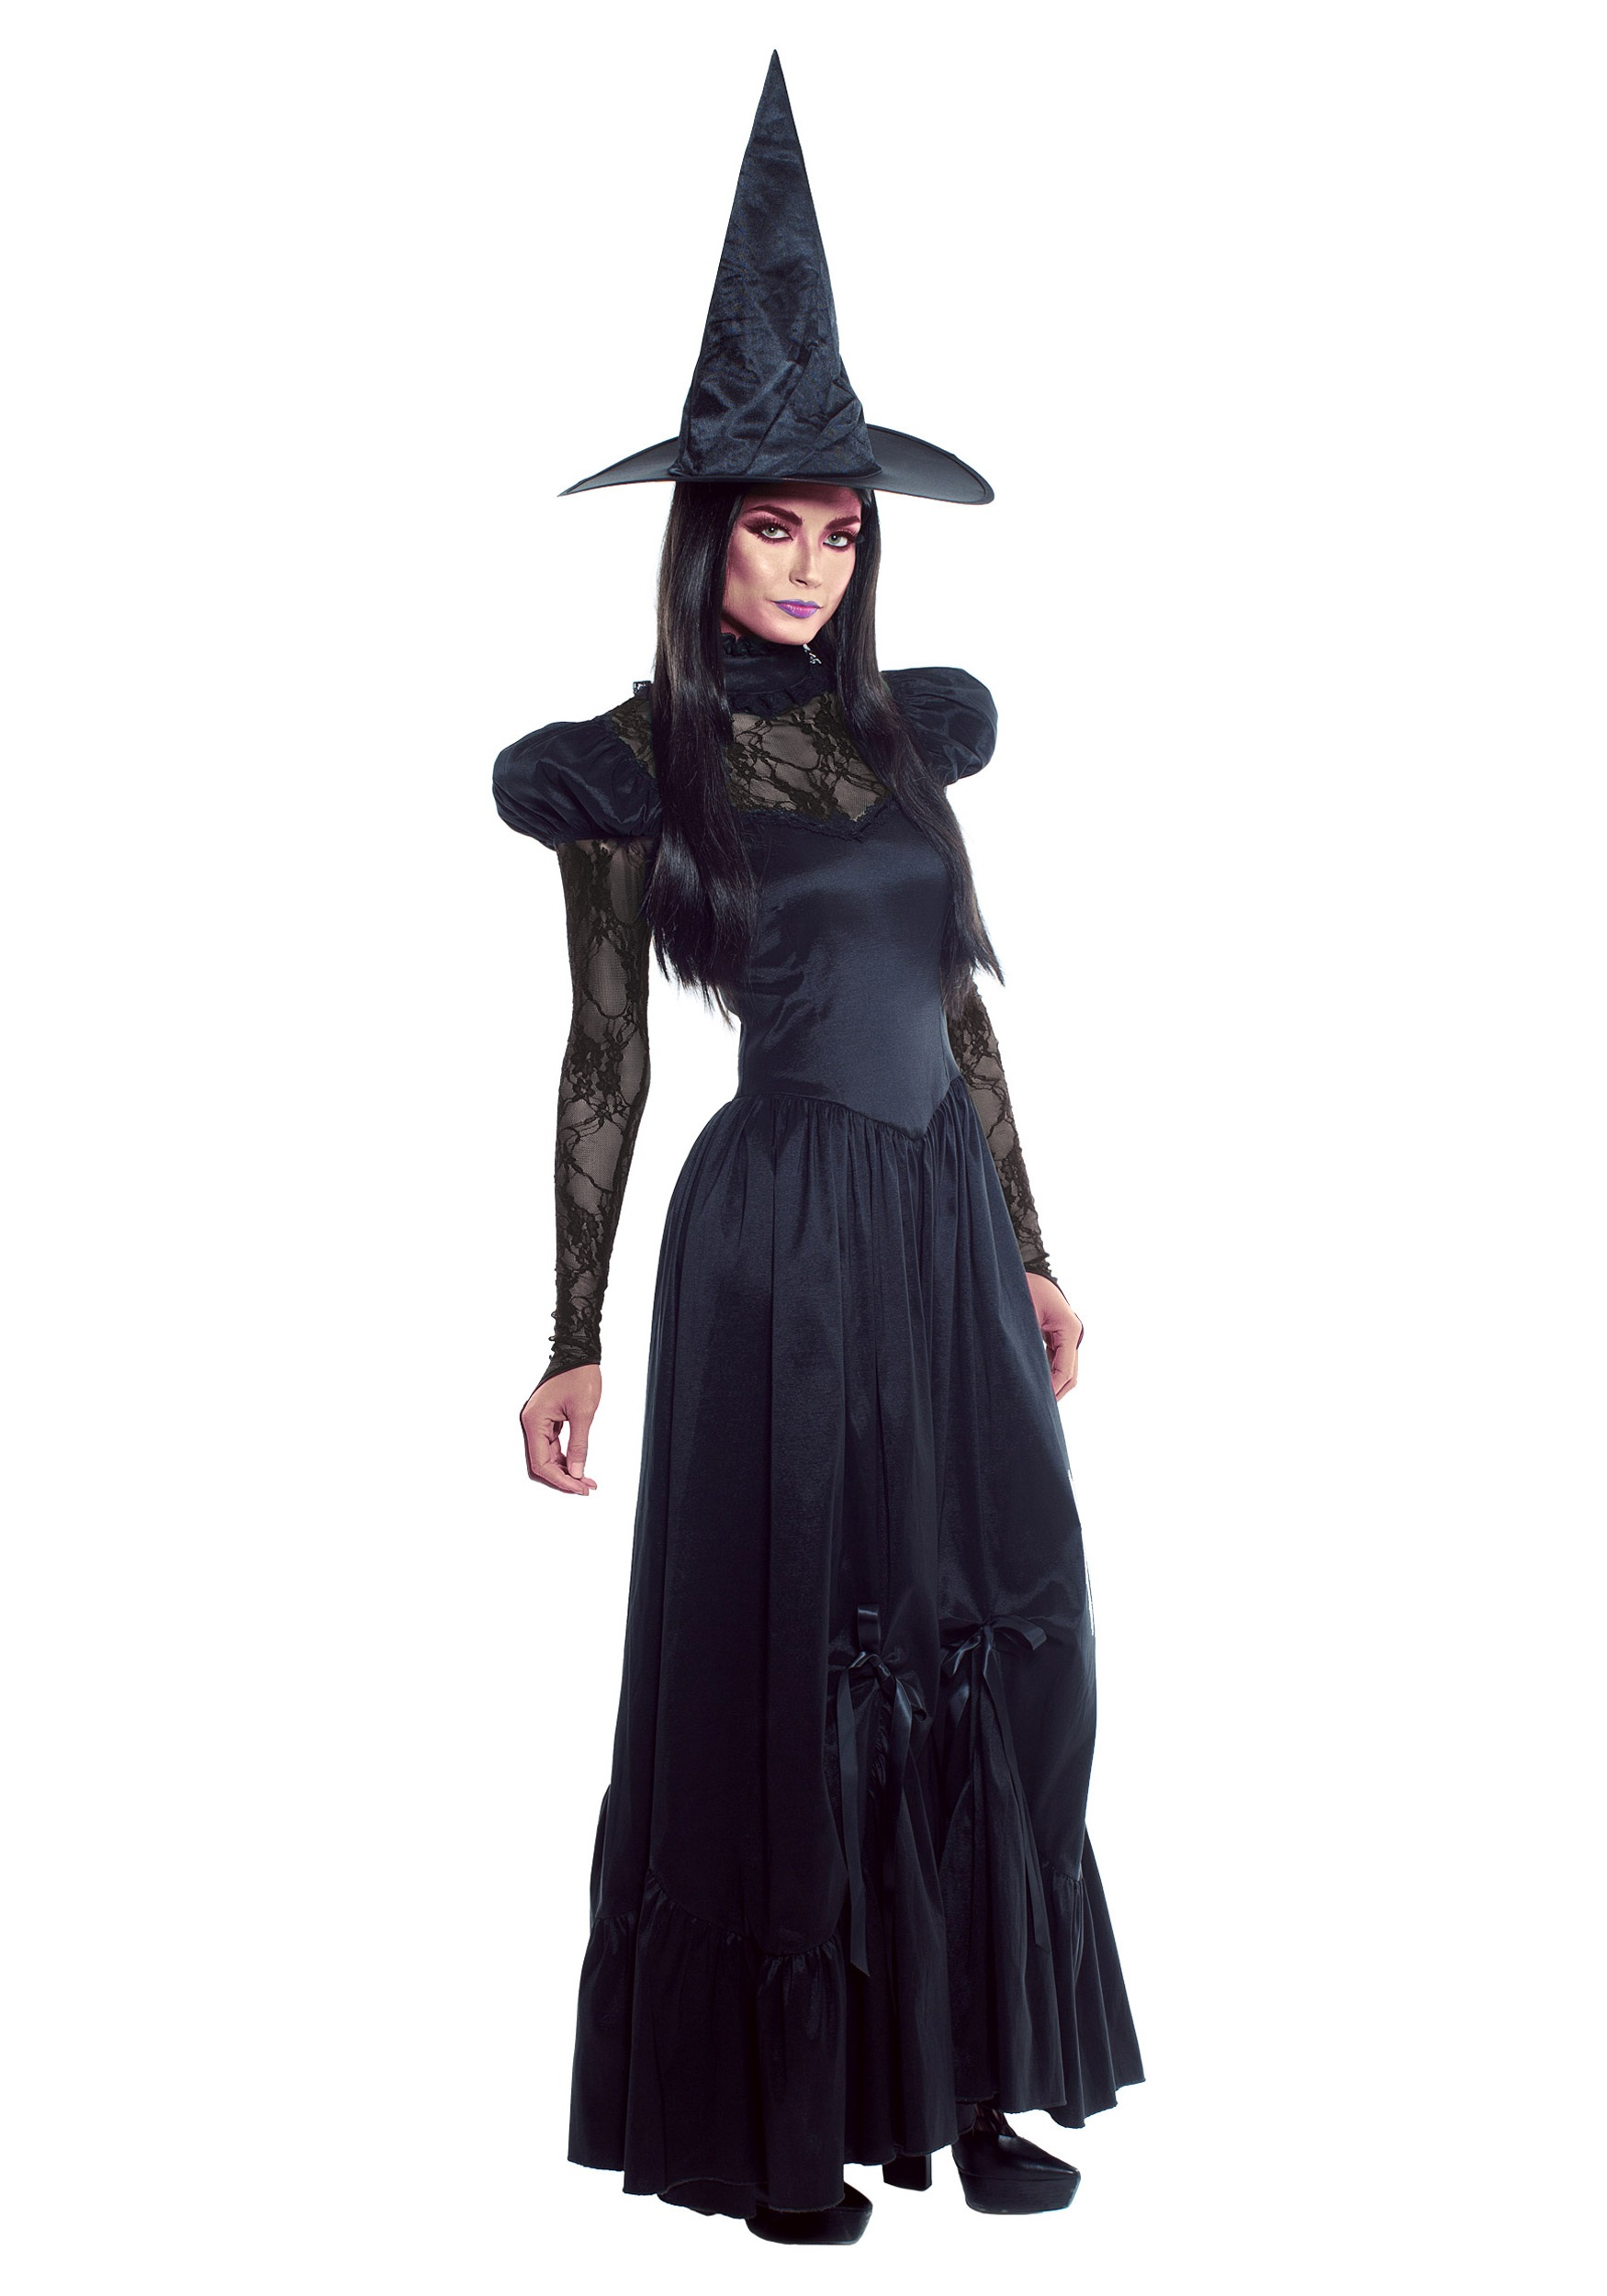 Women's Plus Size Witch Costume |Plus Size Halloween Costumes Witch